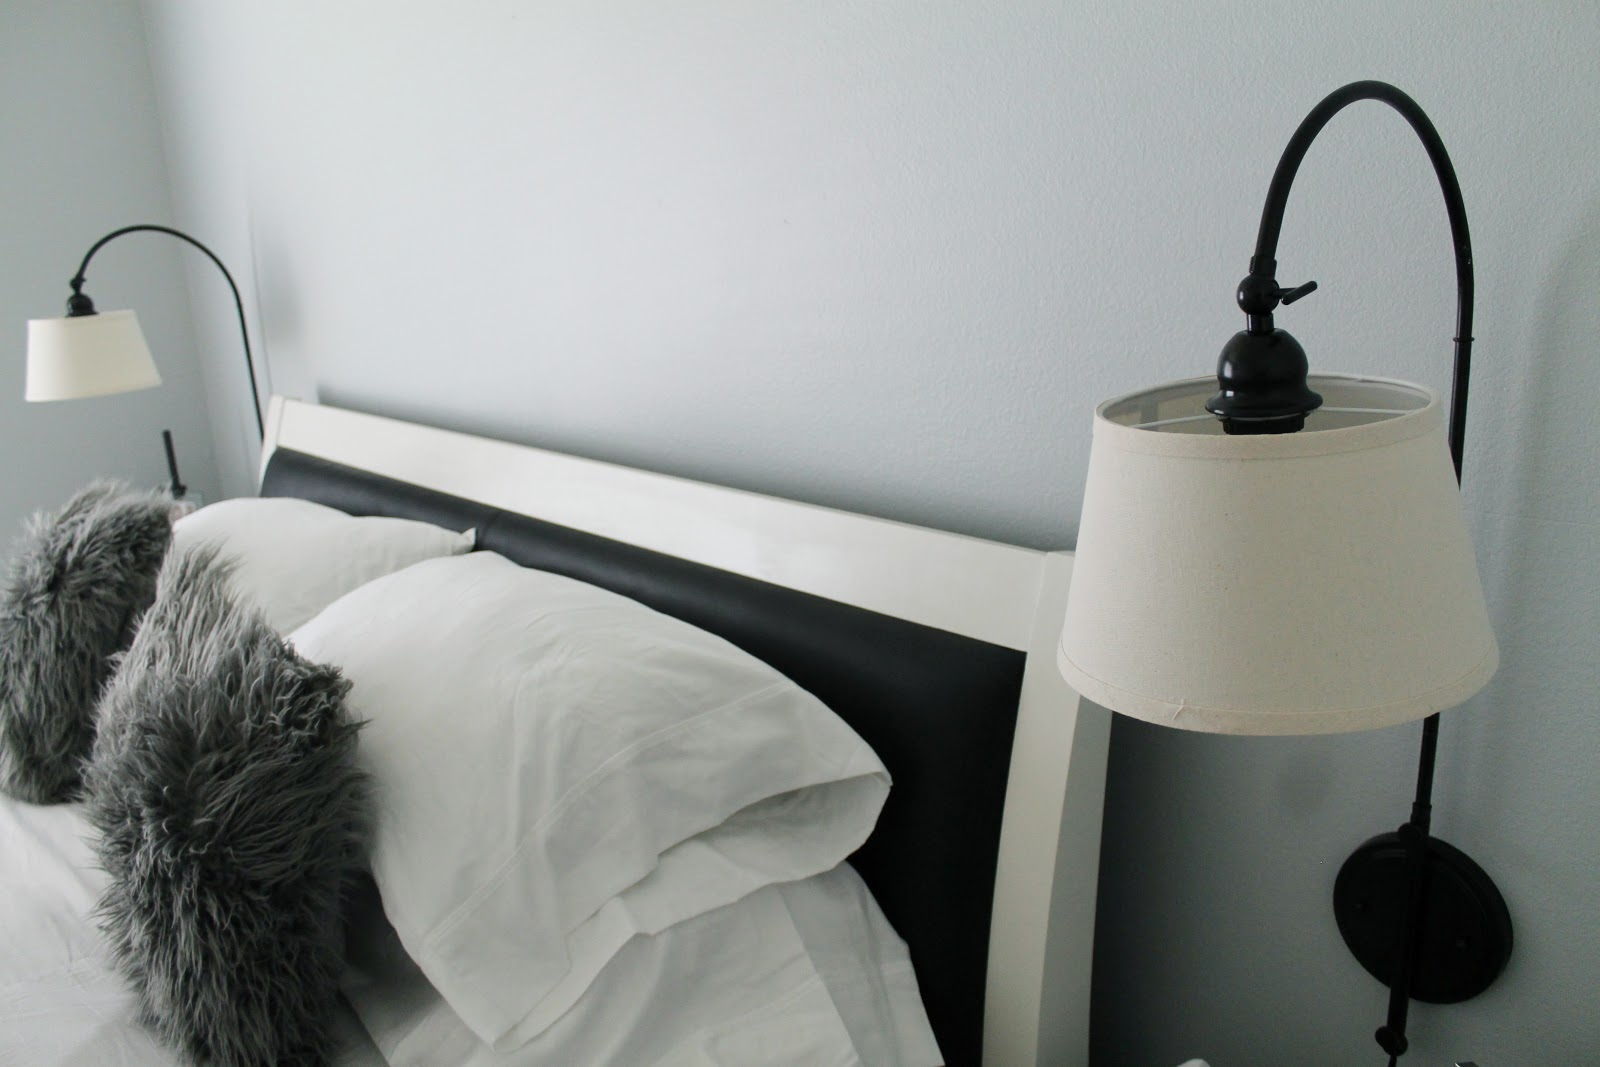 Bed Reading Lamp Headboard Bed Reading Lamps 10 Important Things You Need To Know